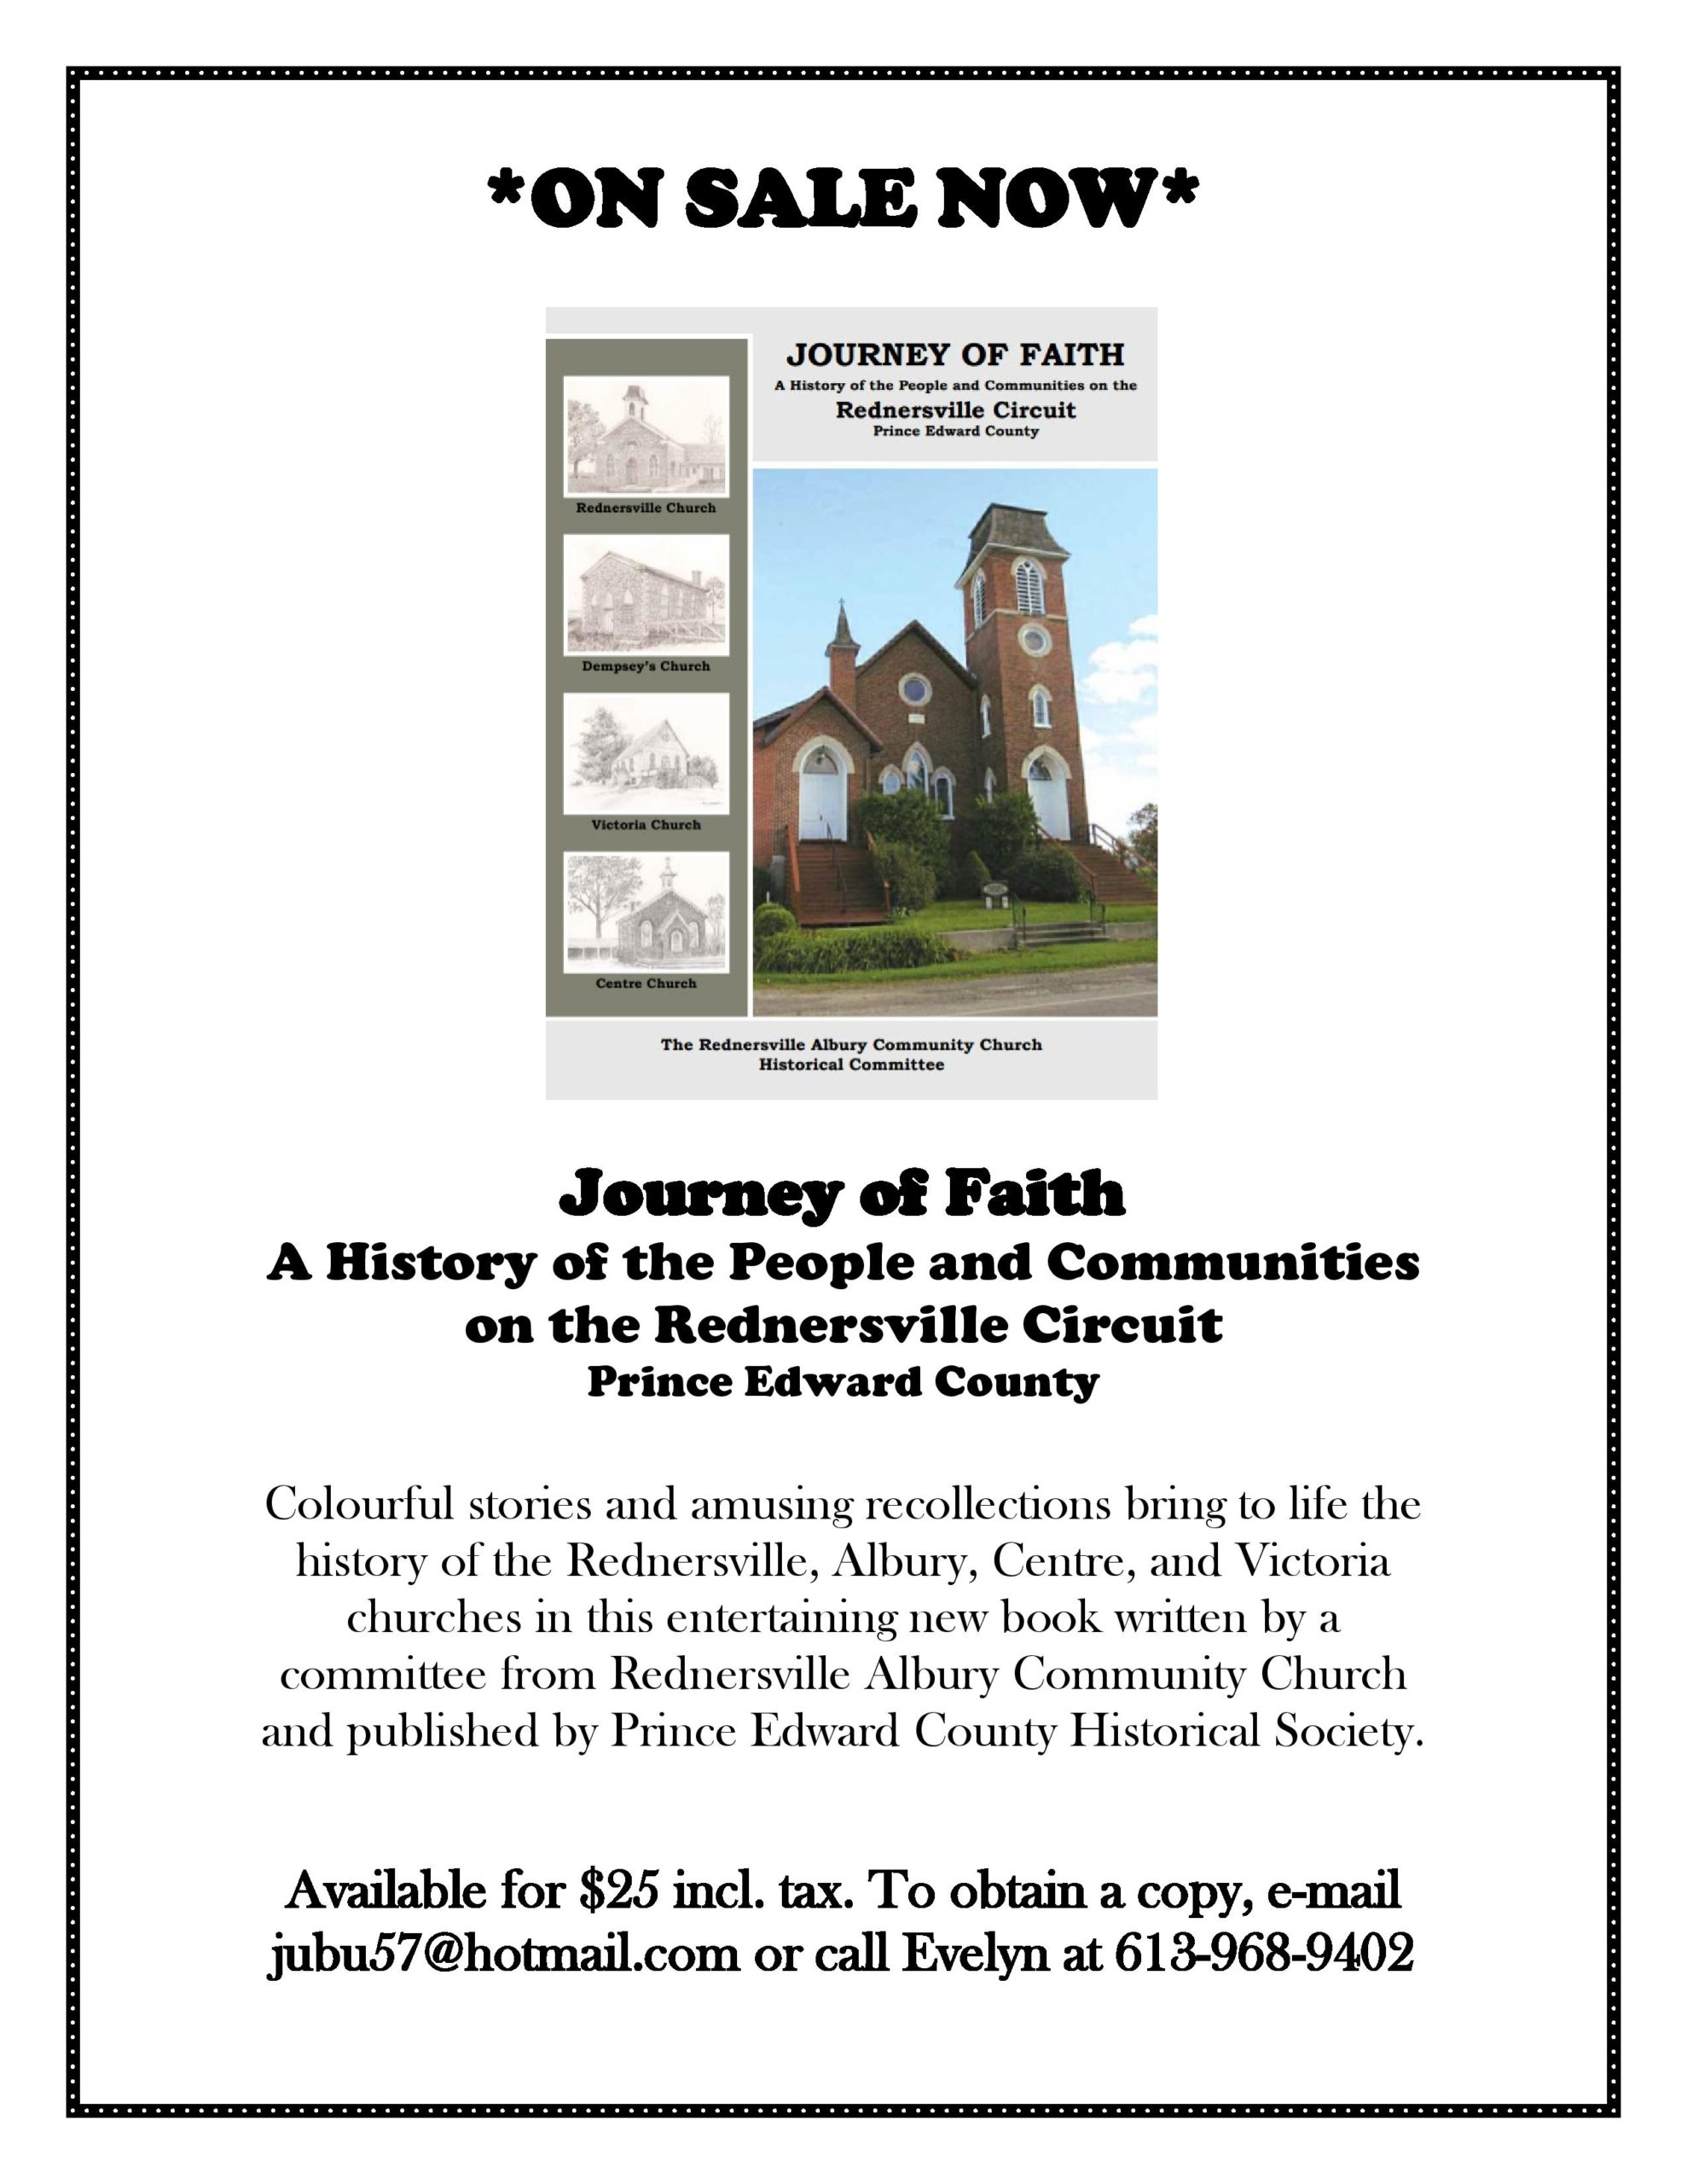 Poster advertising Journey of Faith / Rednersville Circuit